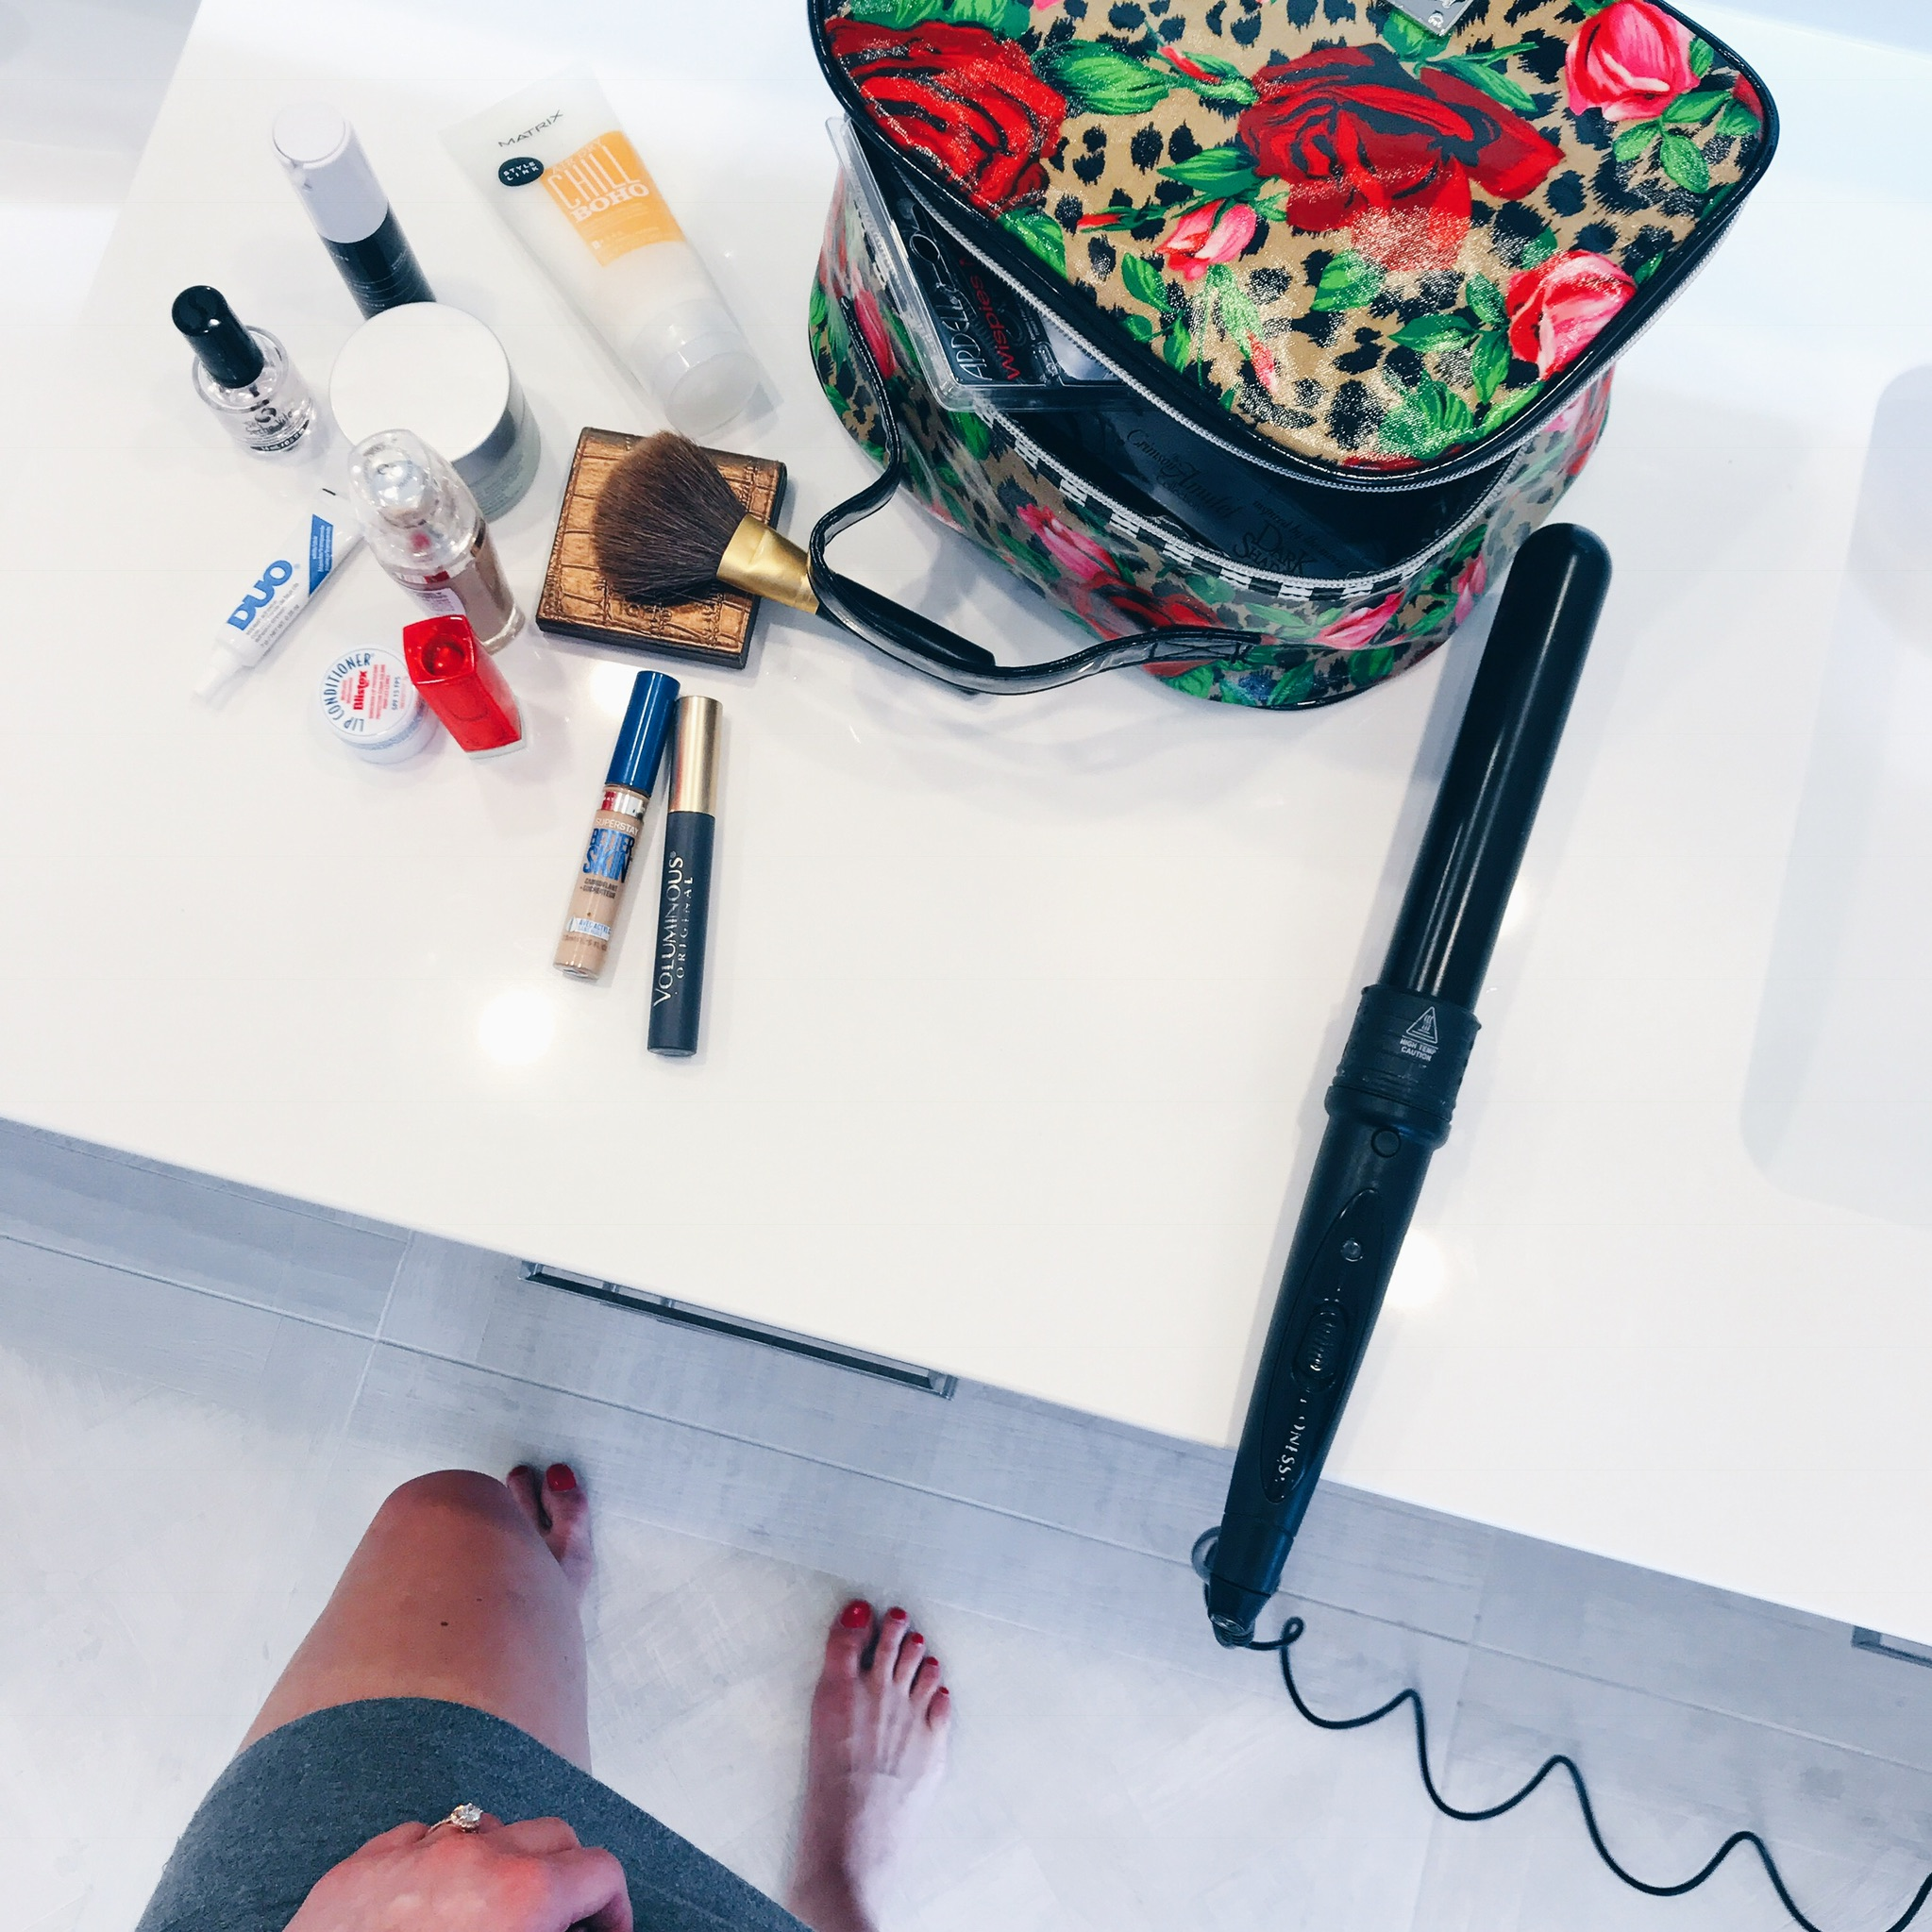 life with aco, master bathroom, makeup bag